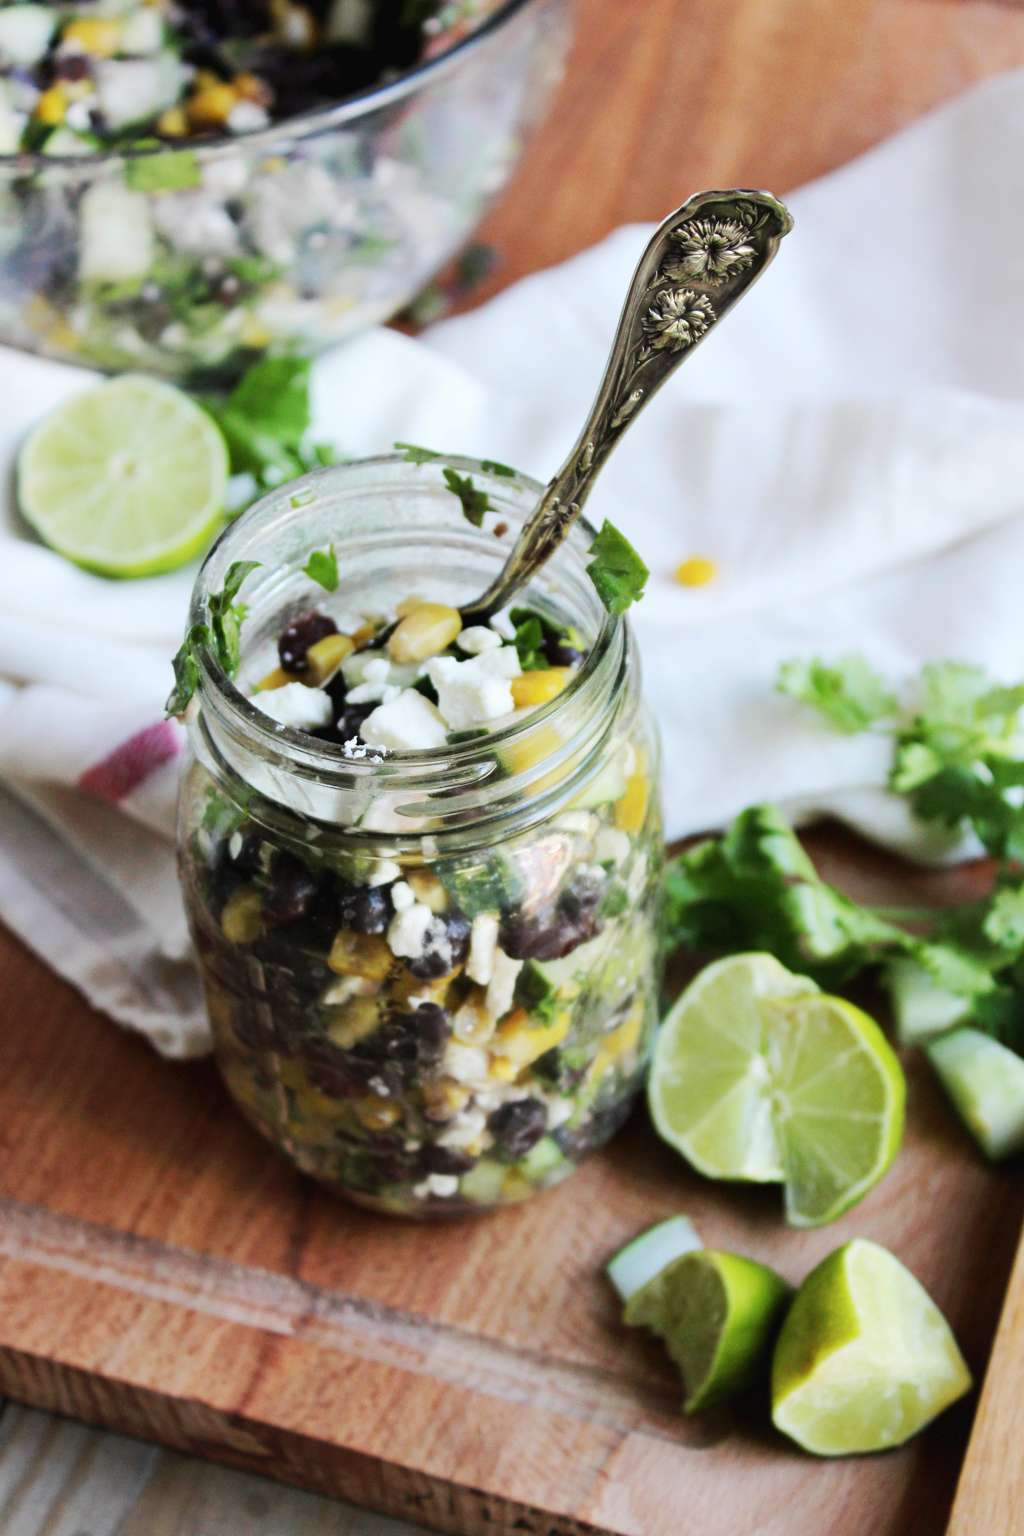 Recipe: Chilled Black Bean, Feta & Cucumber Salad